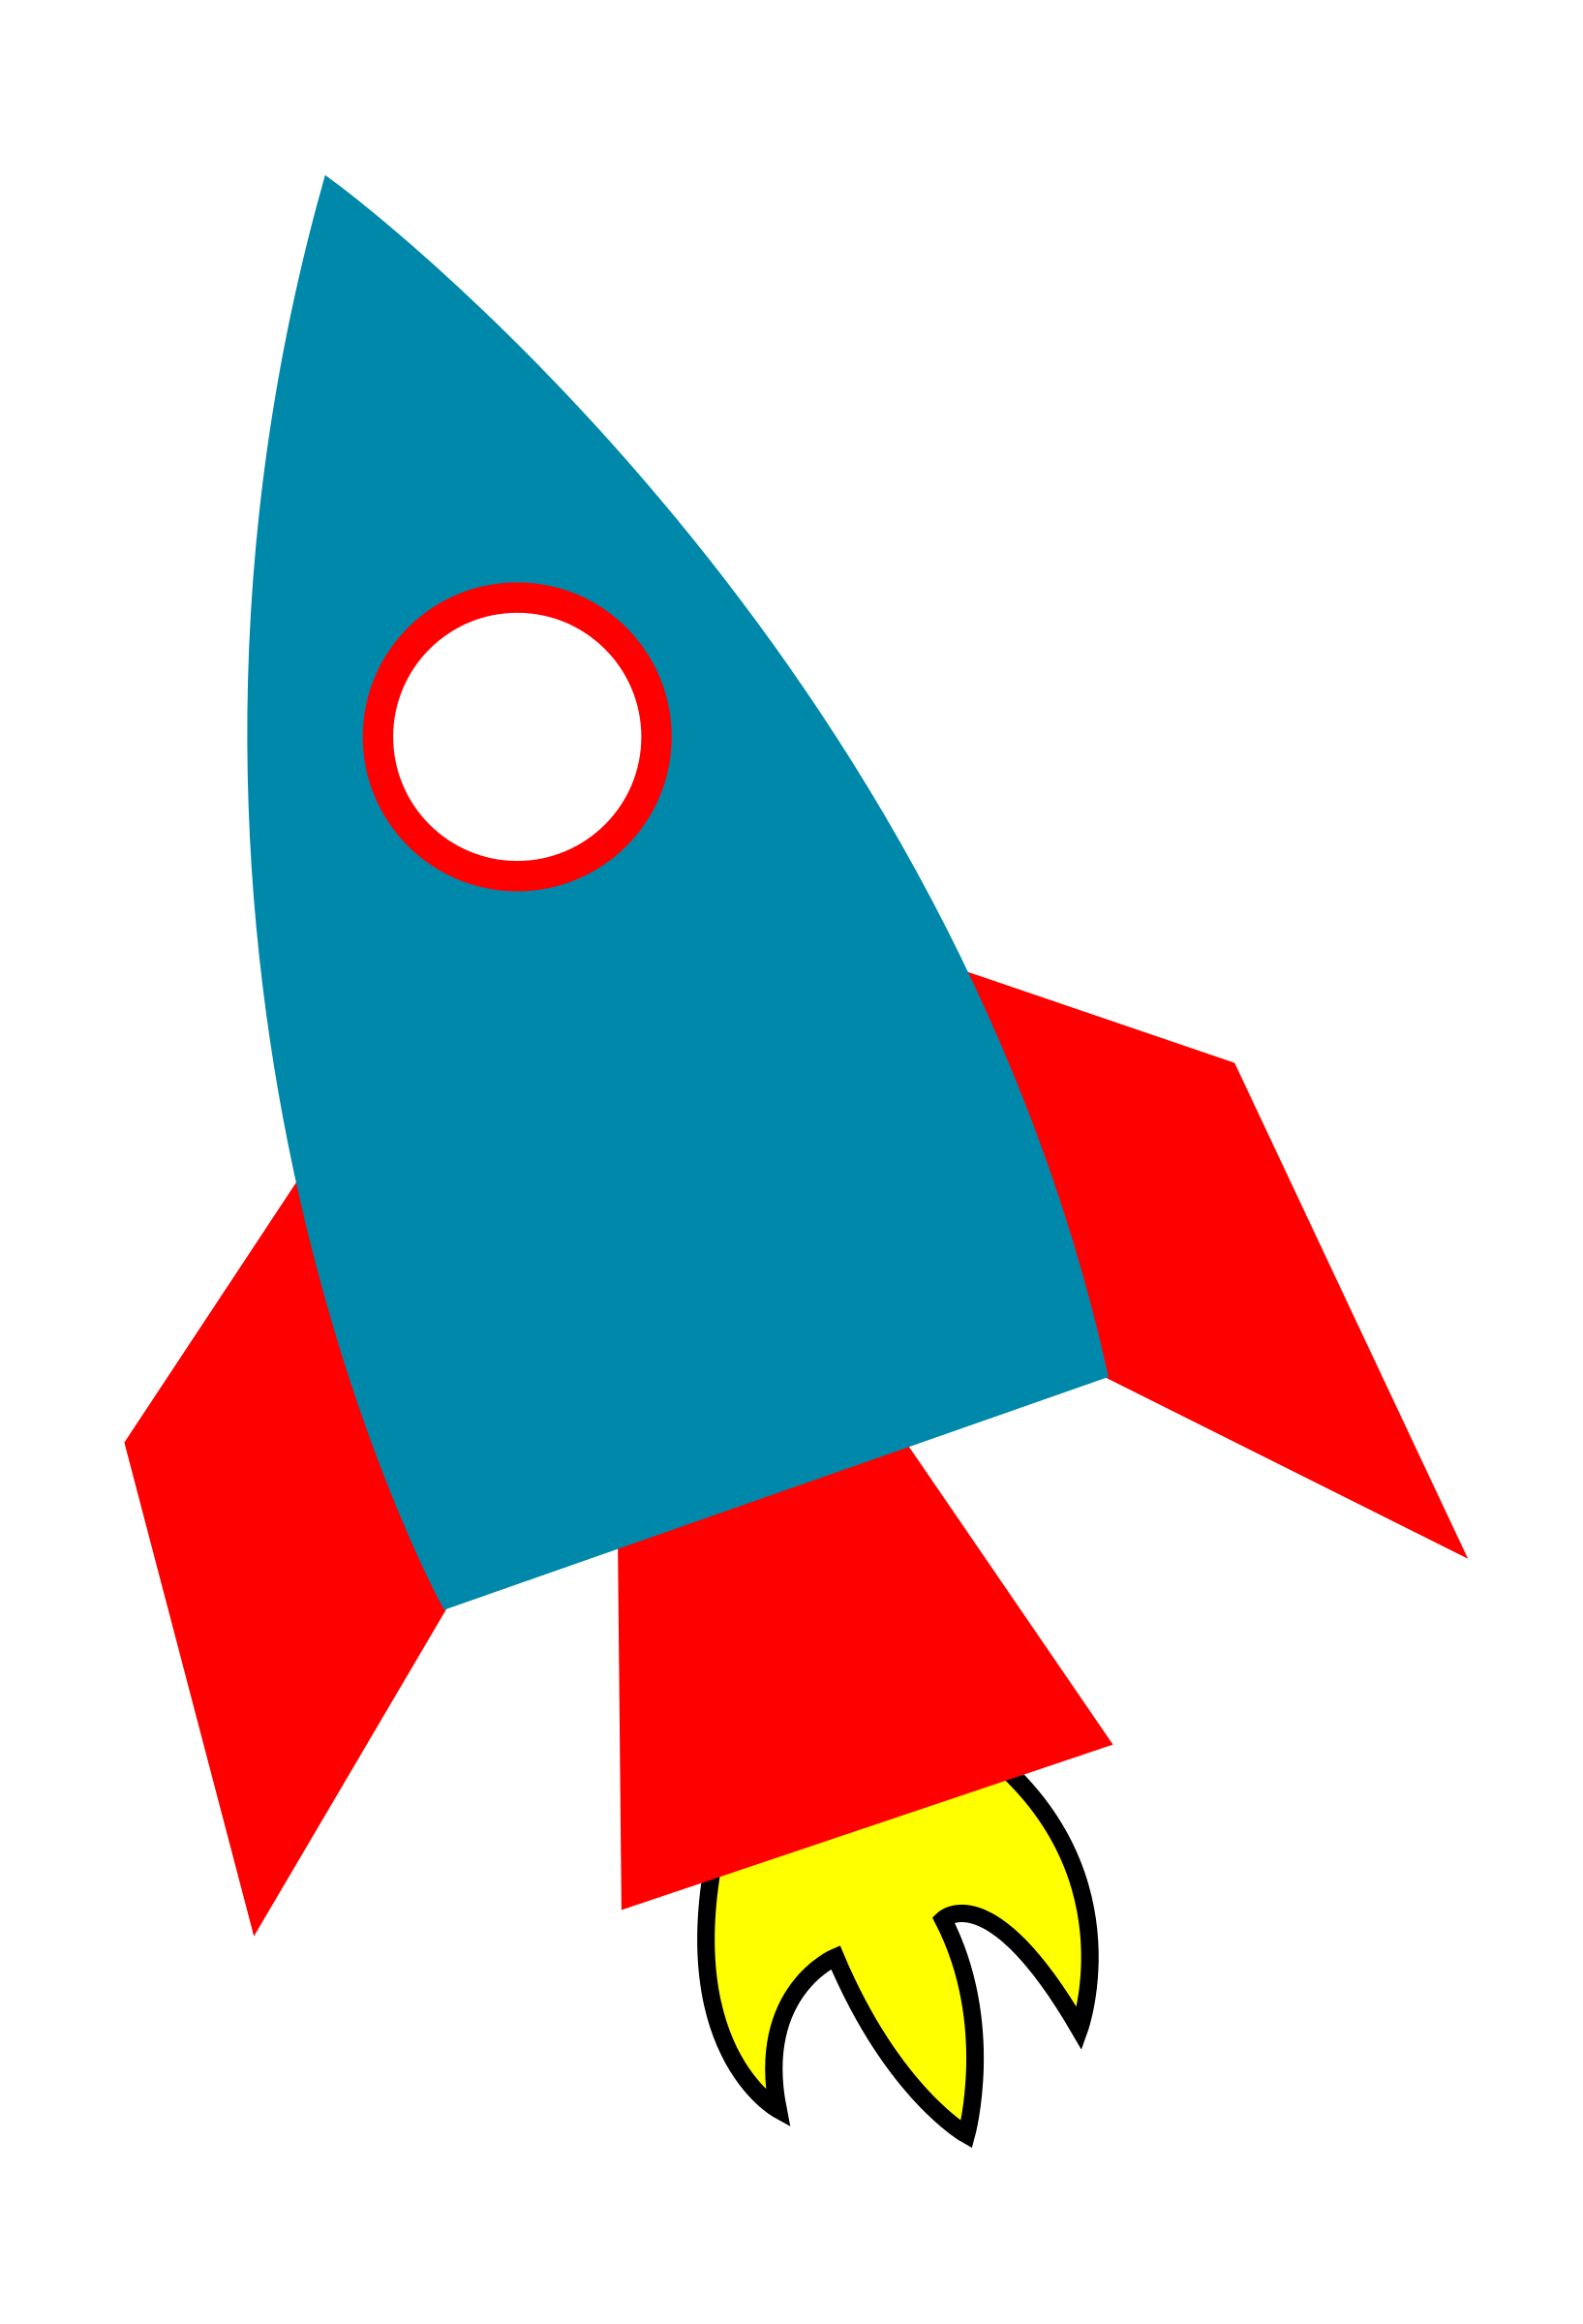 Rocket clipart #12, Download drawings